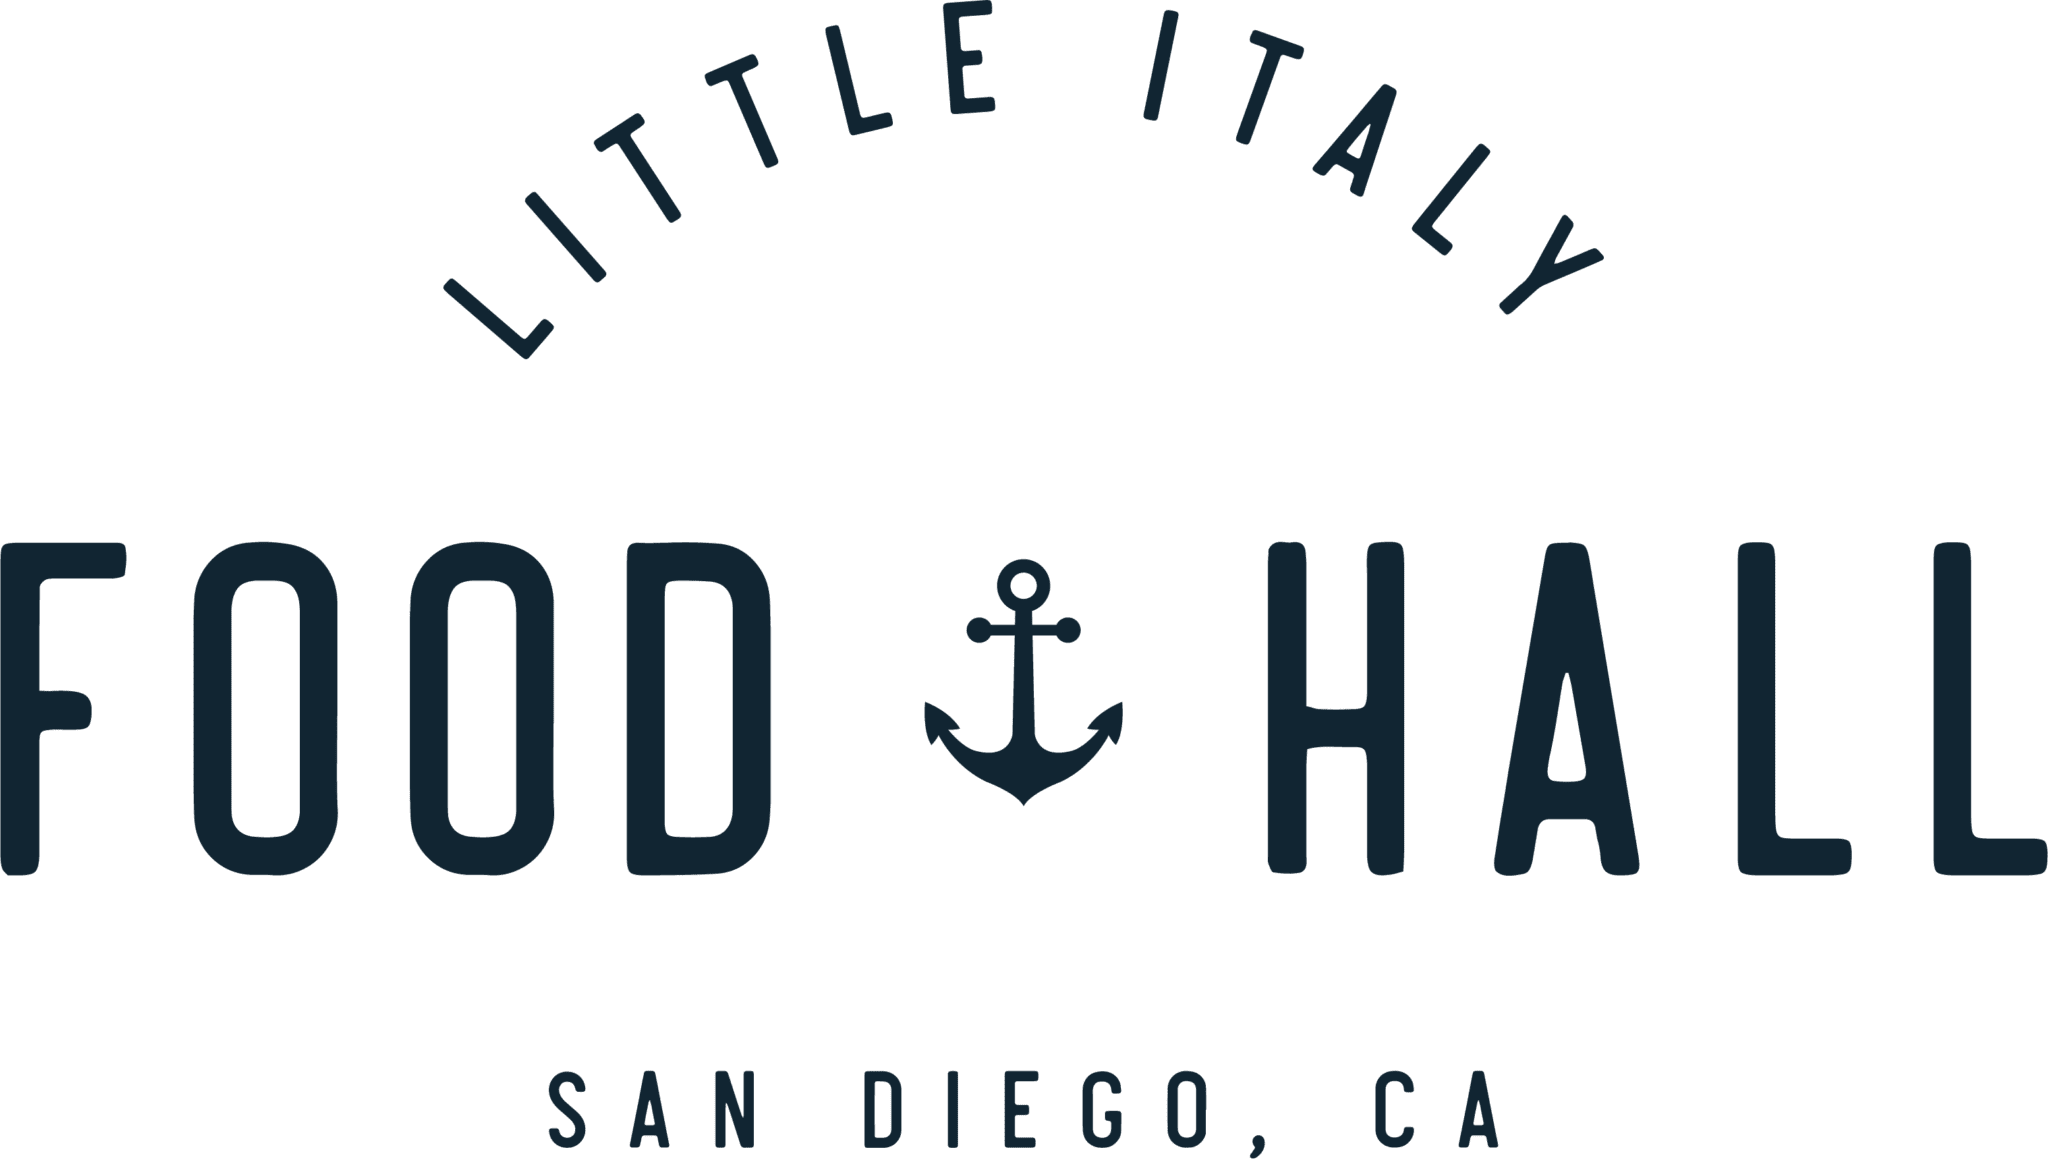 Little Italy Food Hall logo